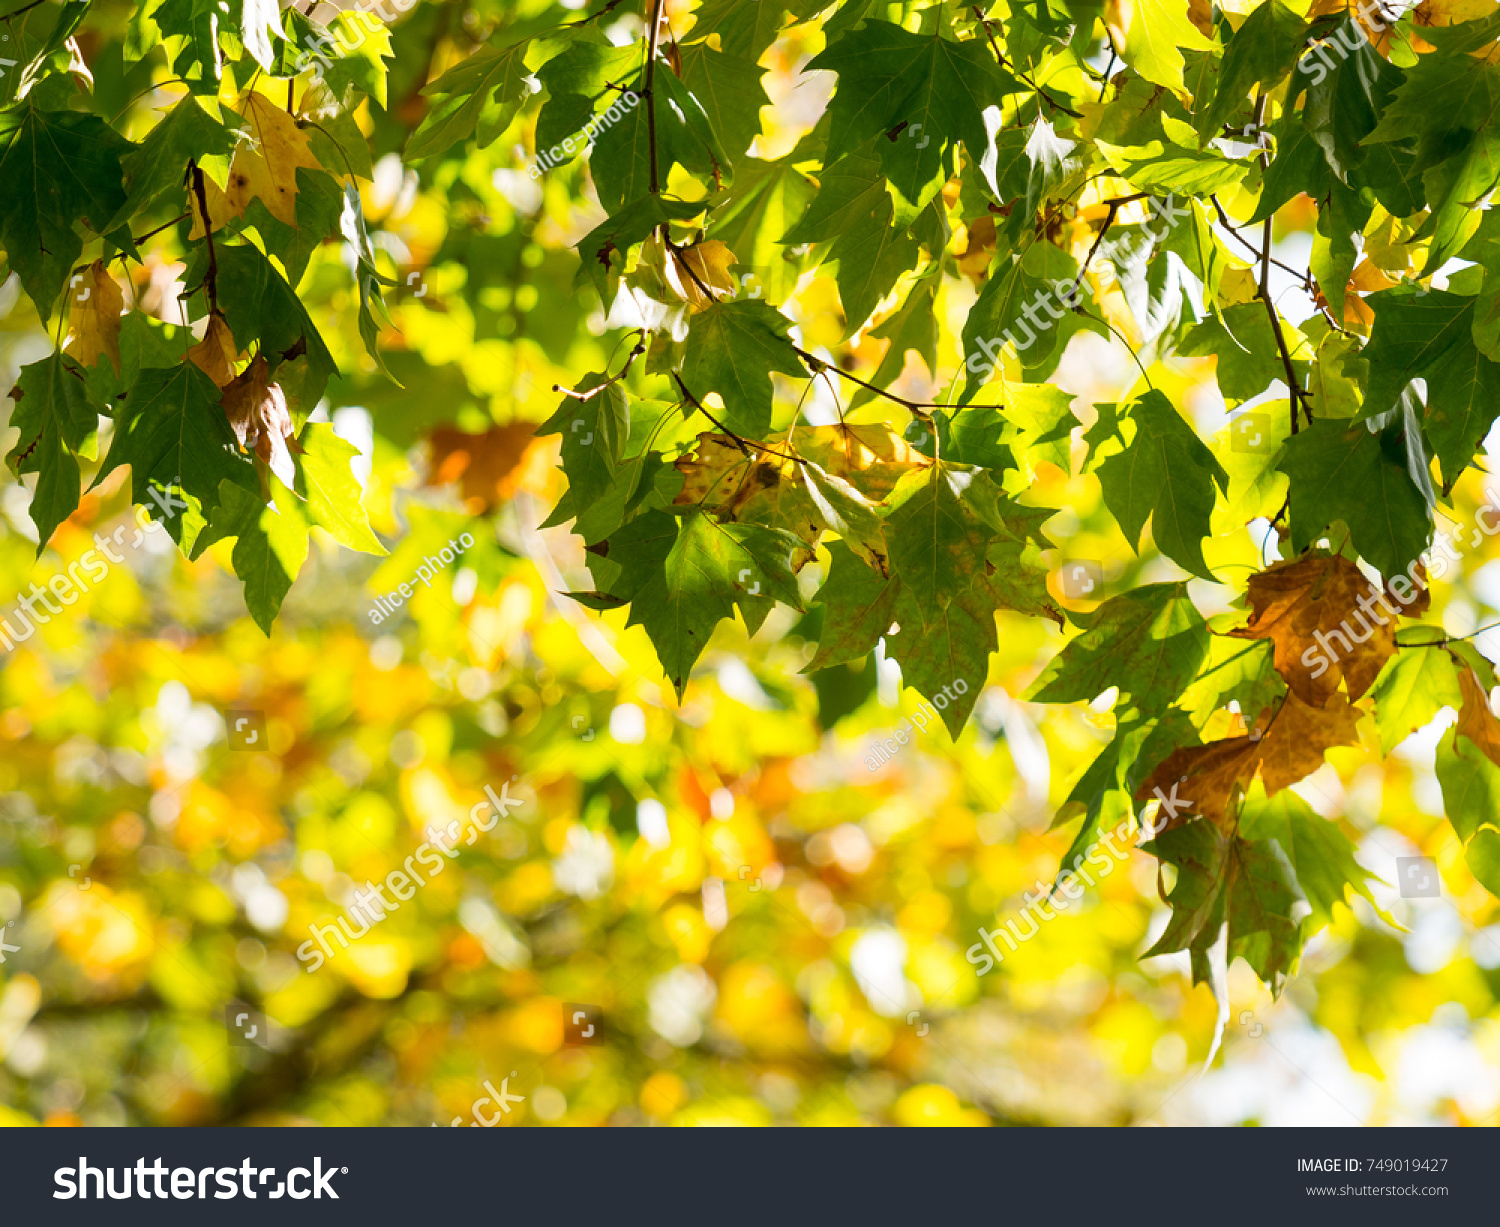 Colorful Green Yellow Autumn Maple Leaf Stock Photo 749019427 ...